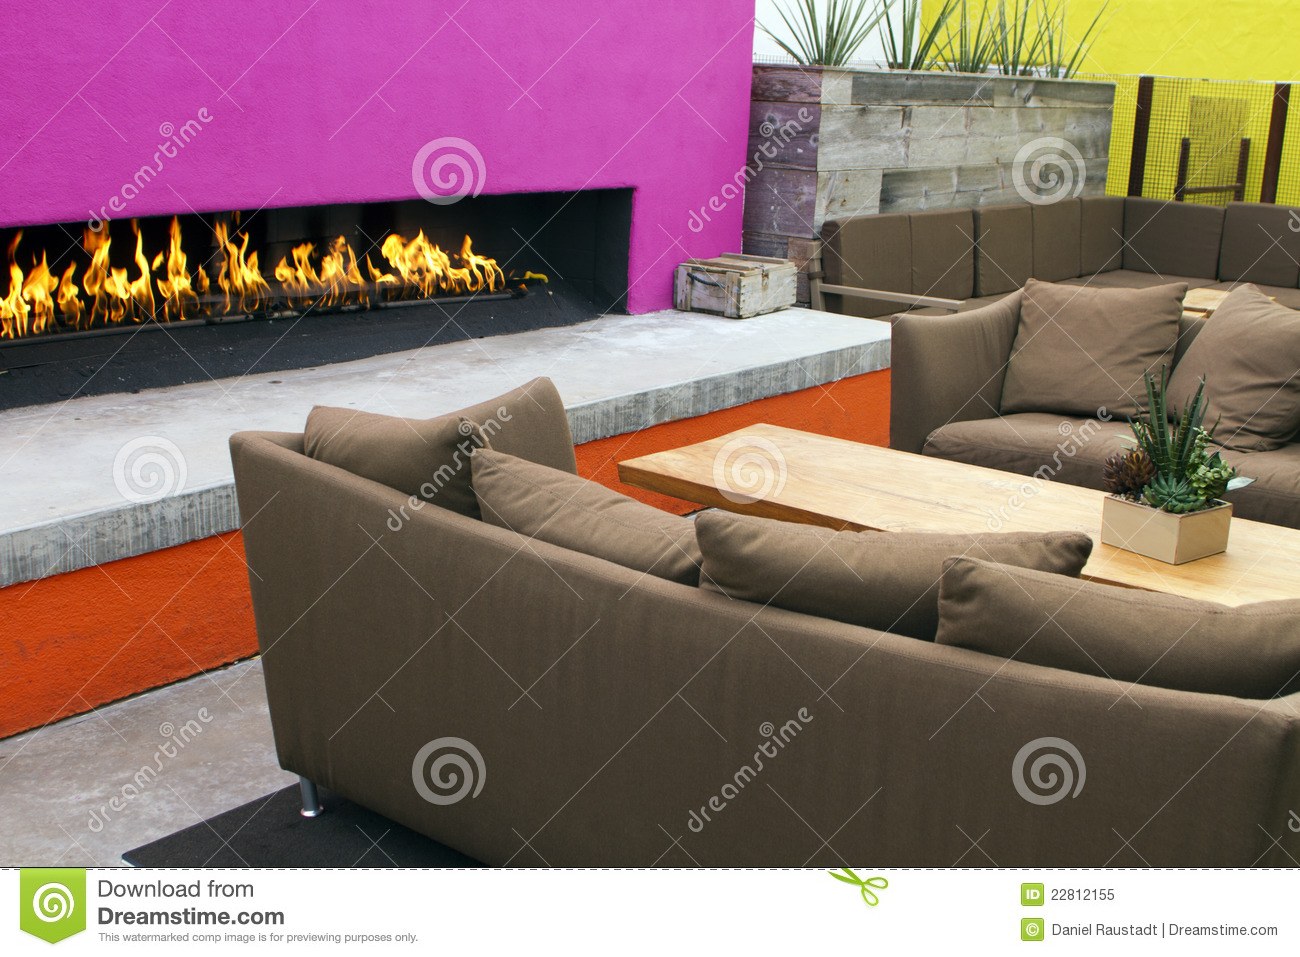 Southwest Home Plans Modern Outdoor Patio Fireplace Royalty Free Stock Photo